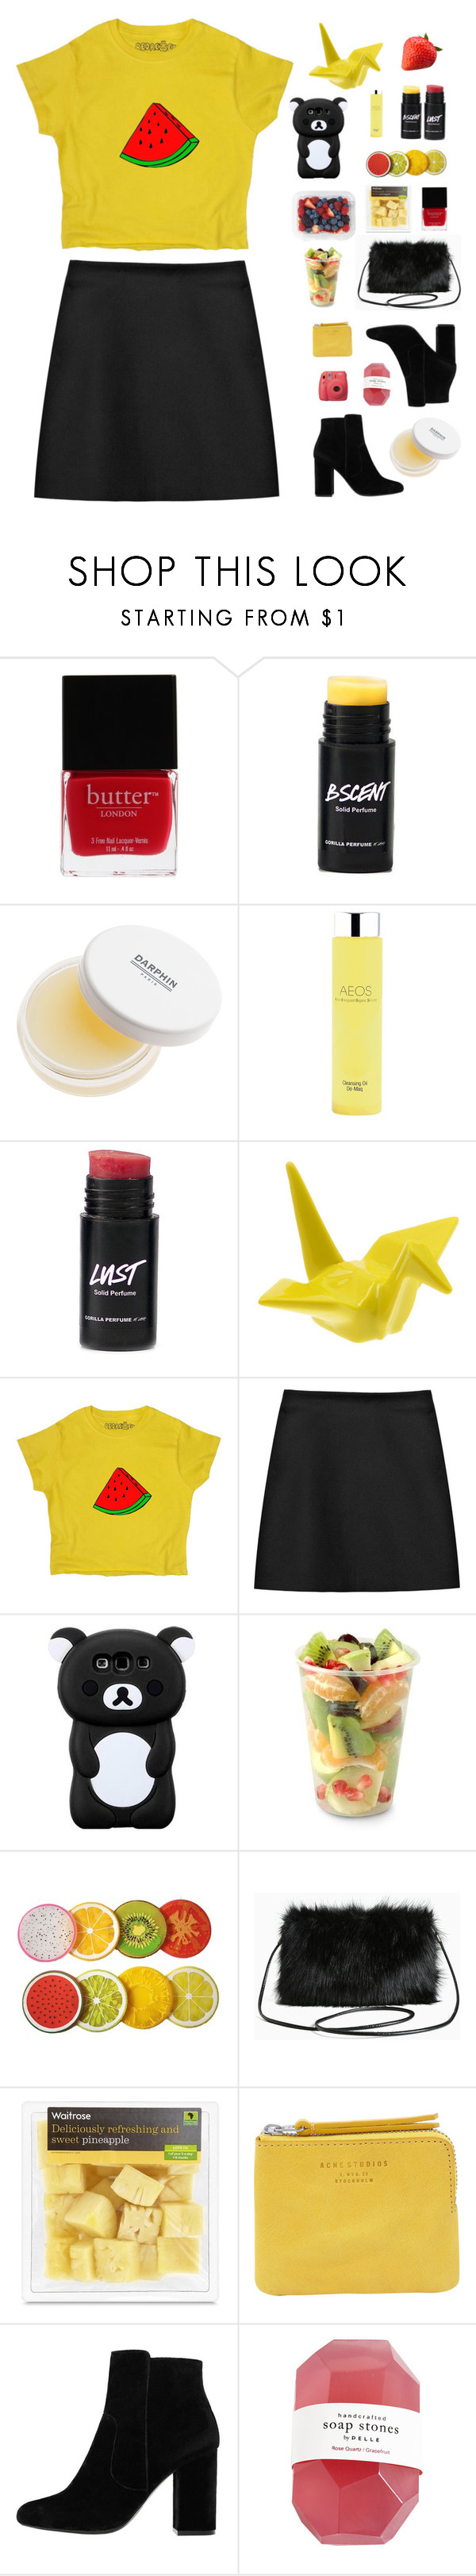 """bae"" by ishipbullshit ❤ liked on Polyvore featuring Butter London, Darphin, AEOS, STELLA McCARTNEY, Aroma, Torrid, Acne Studios, MANGO and Fujifilm"